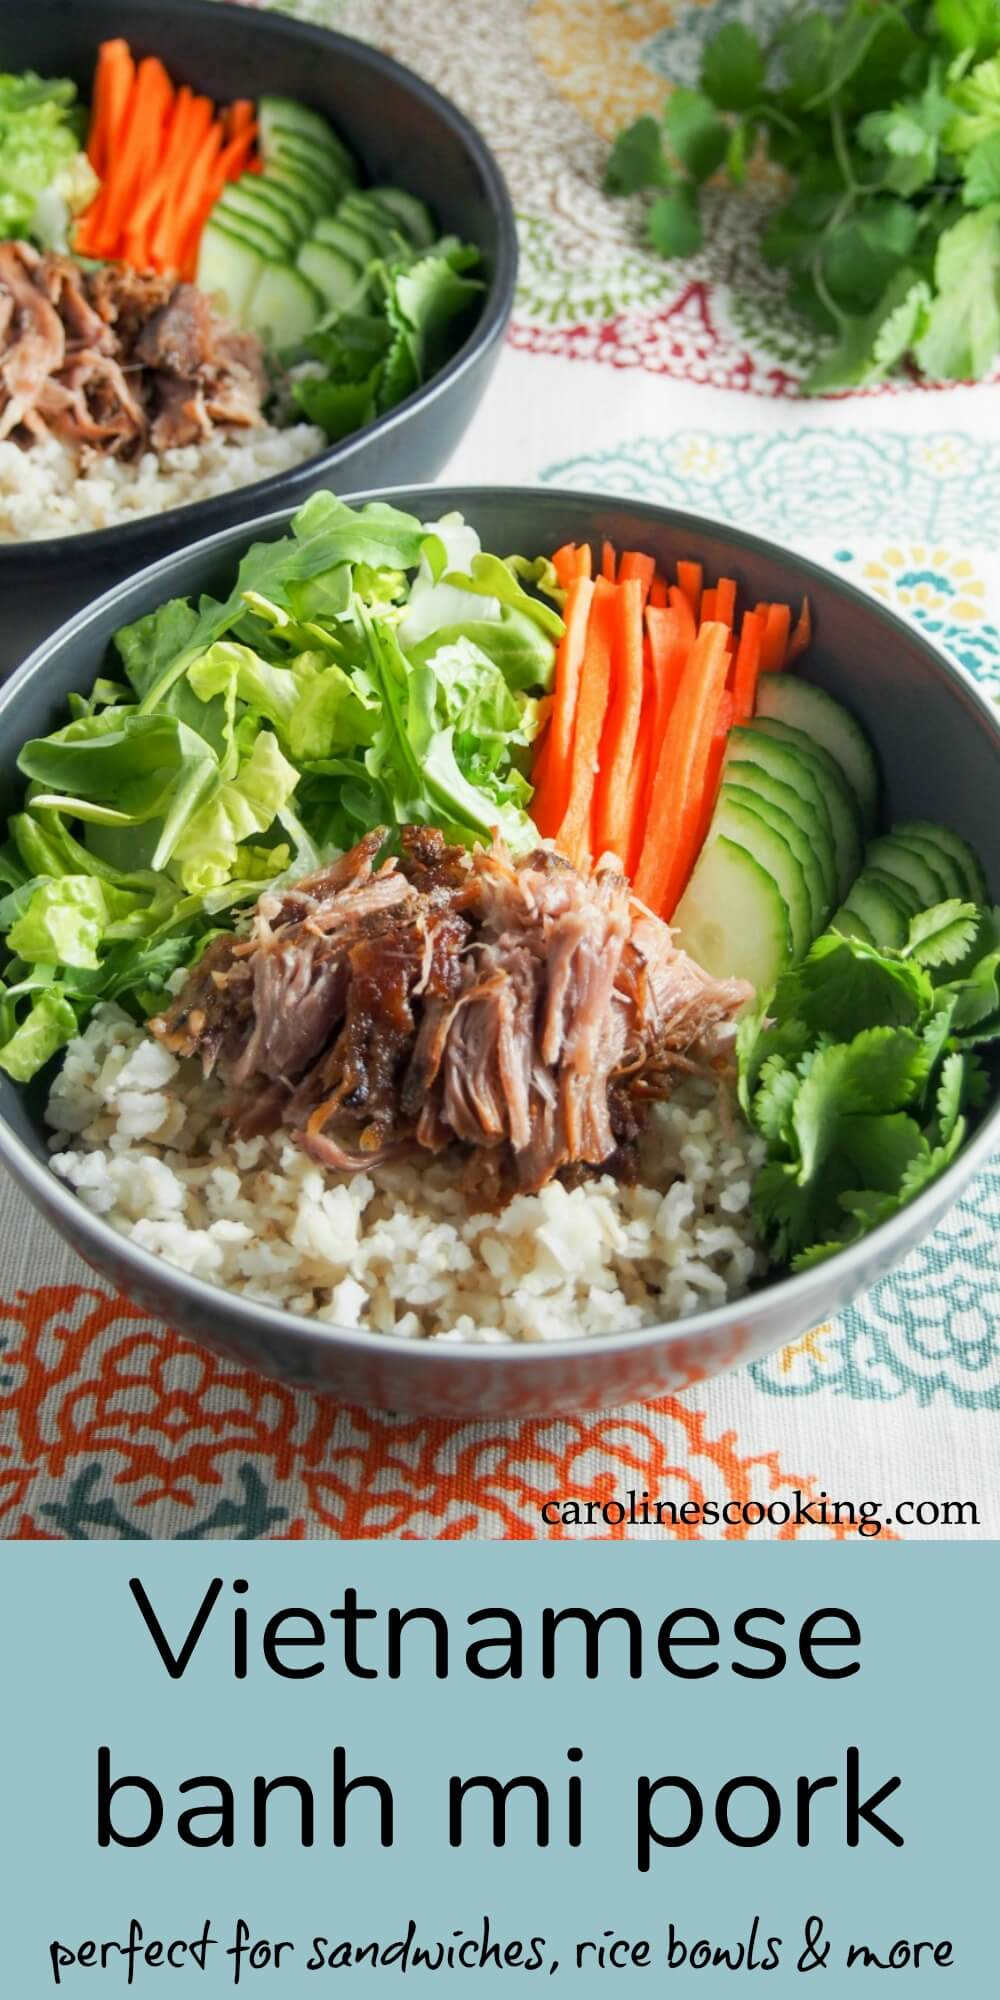 This slow cooked Vietnamese banh mi pork is the perfect base for the traditional sandwiches, rice bowls and more. Just a couple minutes of prep, then the slow cooker does all the work for tender, fall apart pork. It's ideal for meal prep as well with lots of uses. #Vietnamese #pork #slowcooker #mealprep